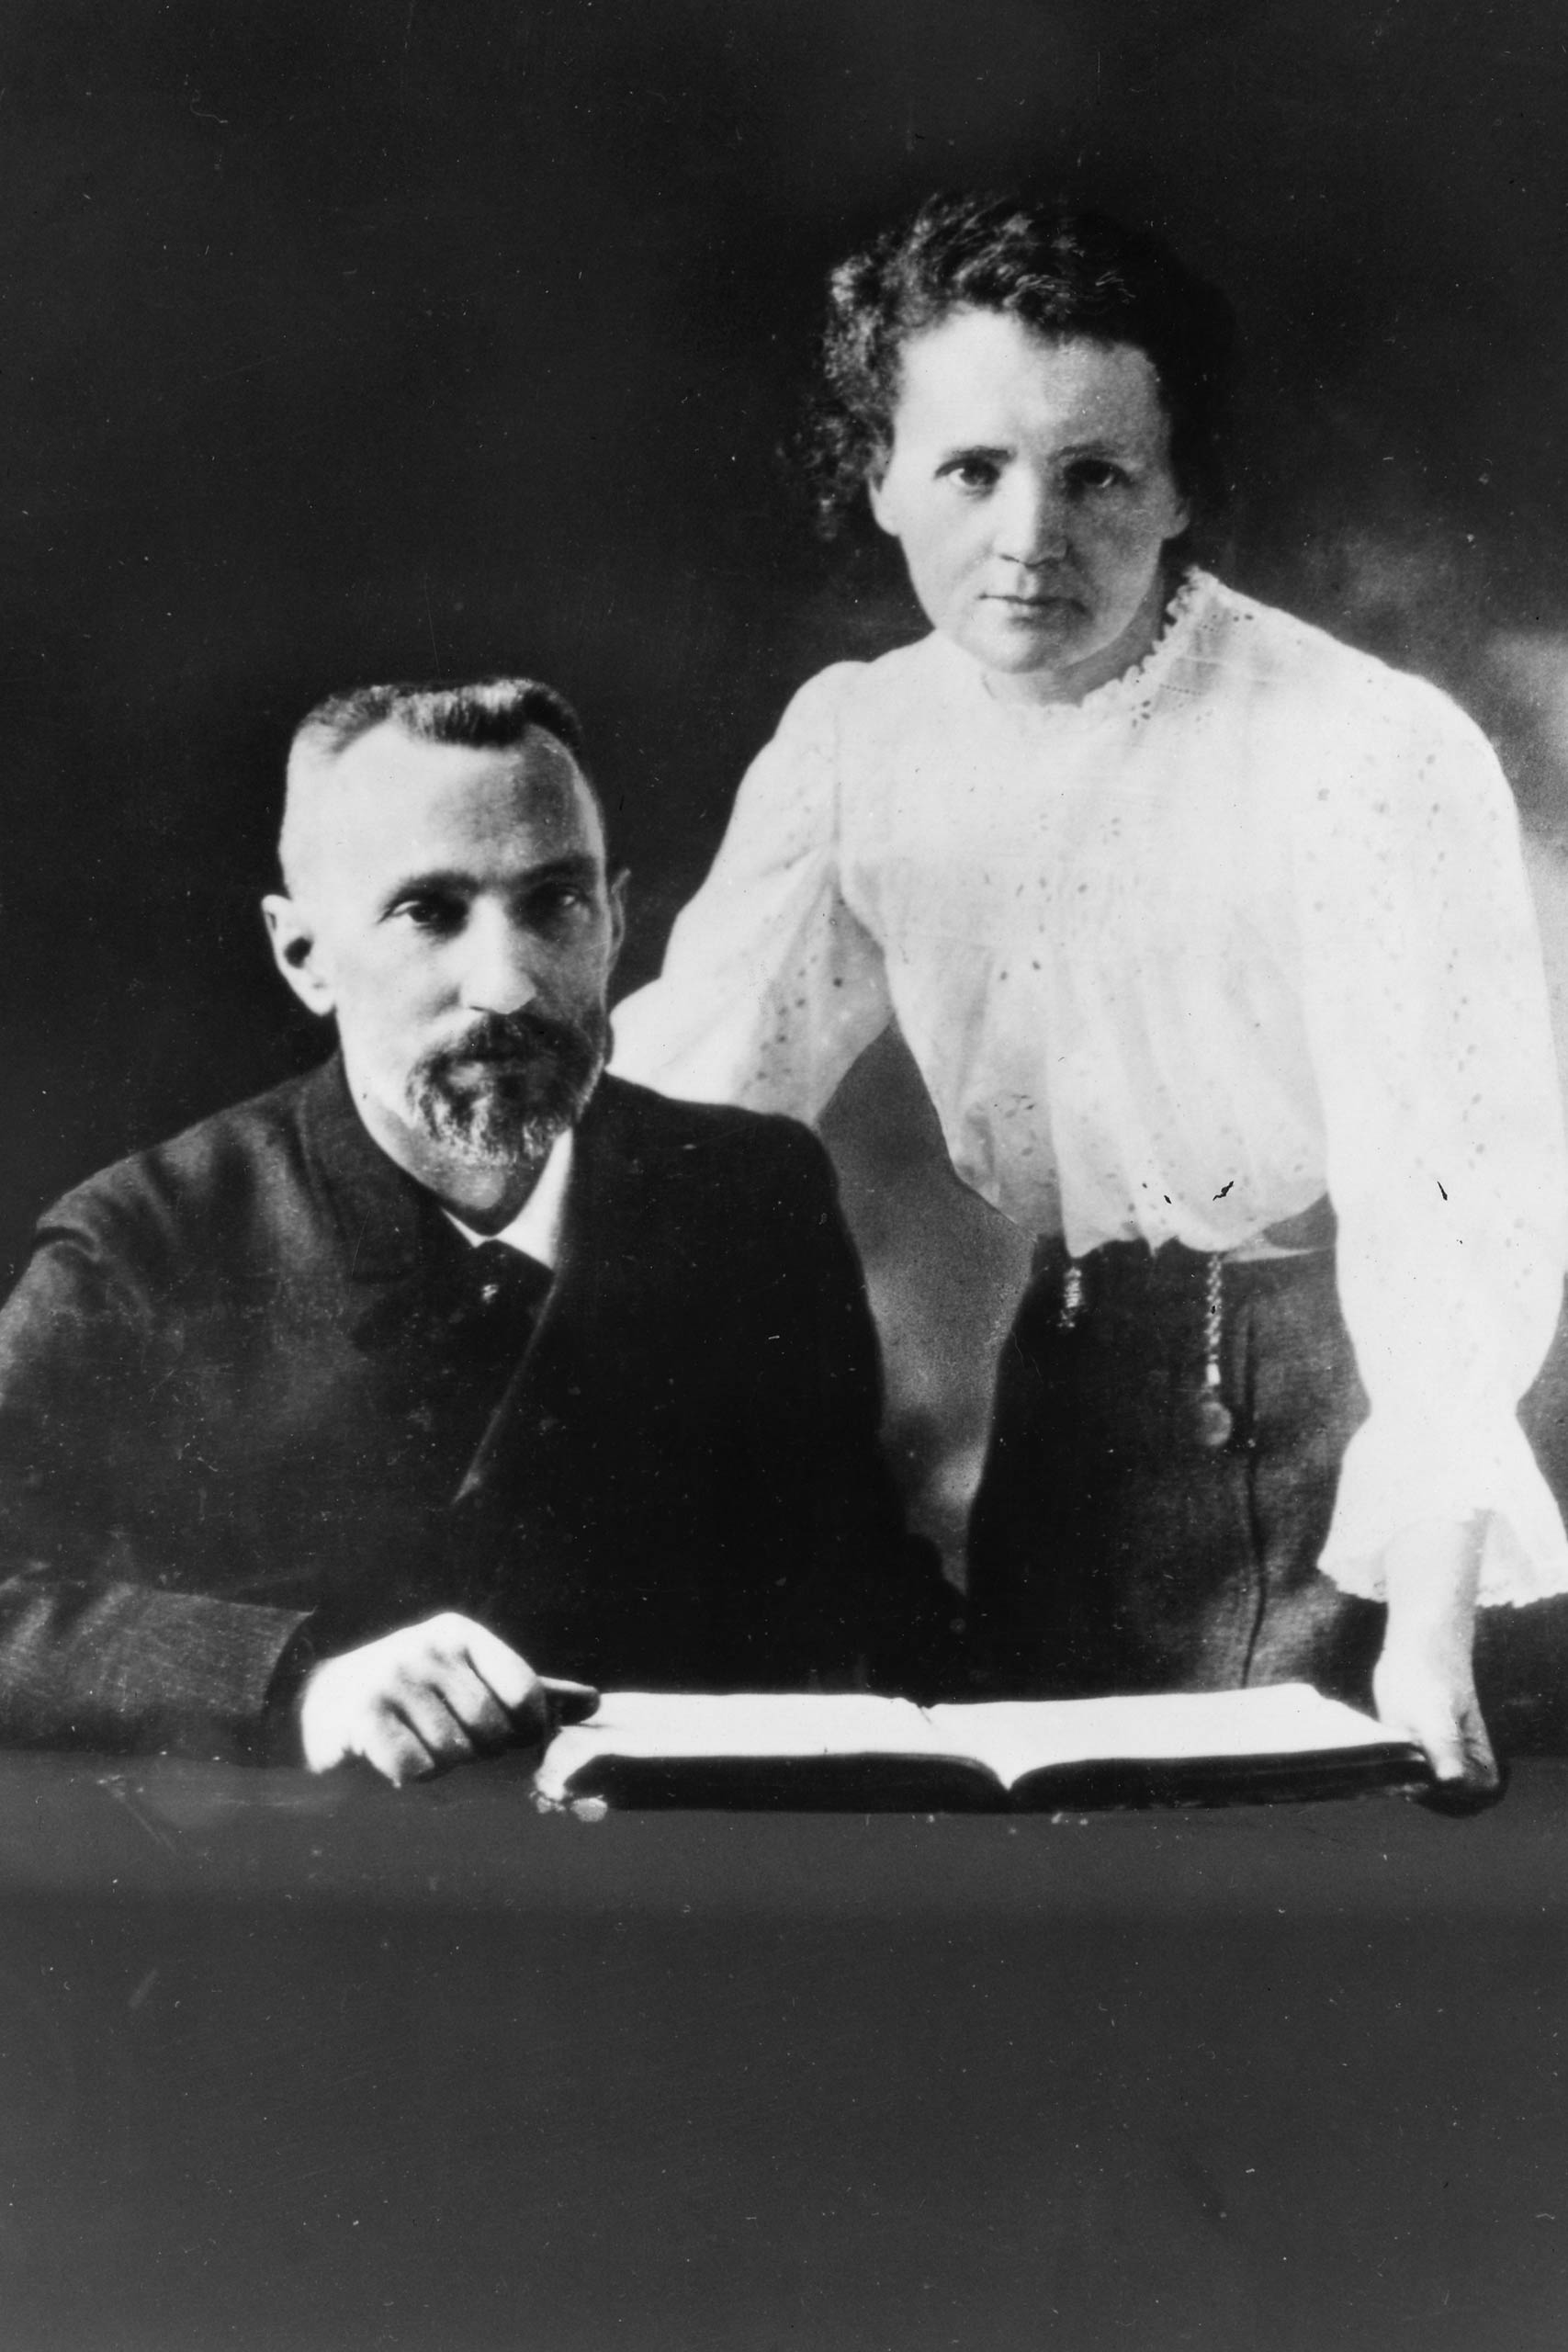 Pierre Curie (1859-1906) and Marie Sklodowska Curie (1867-1934) Artist: Anonymous